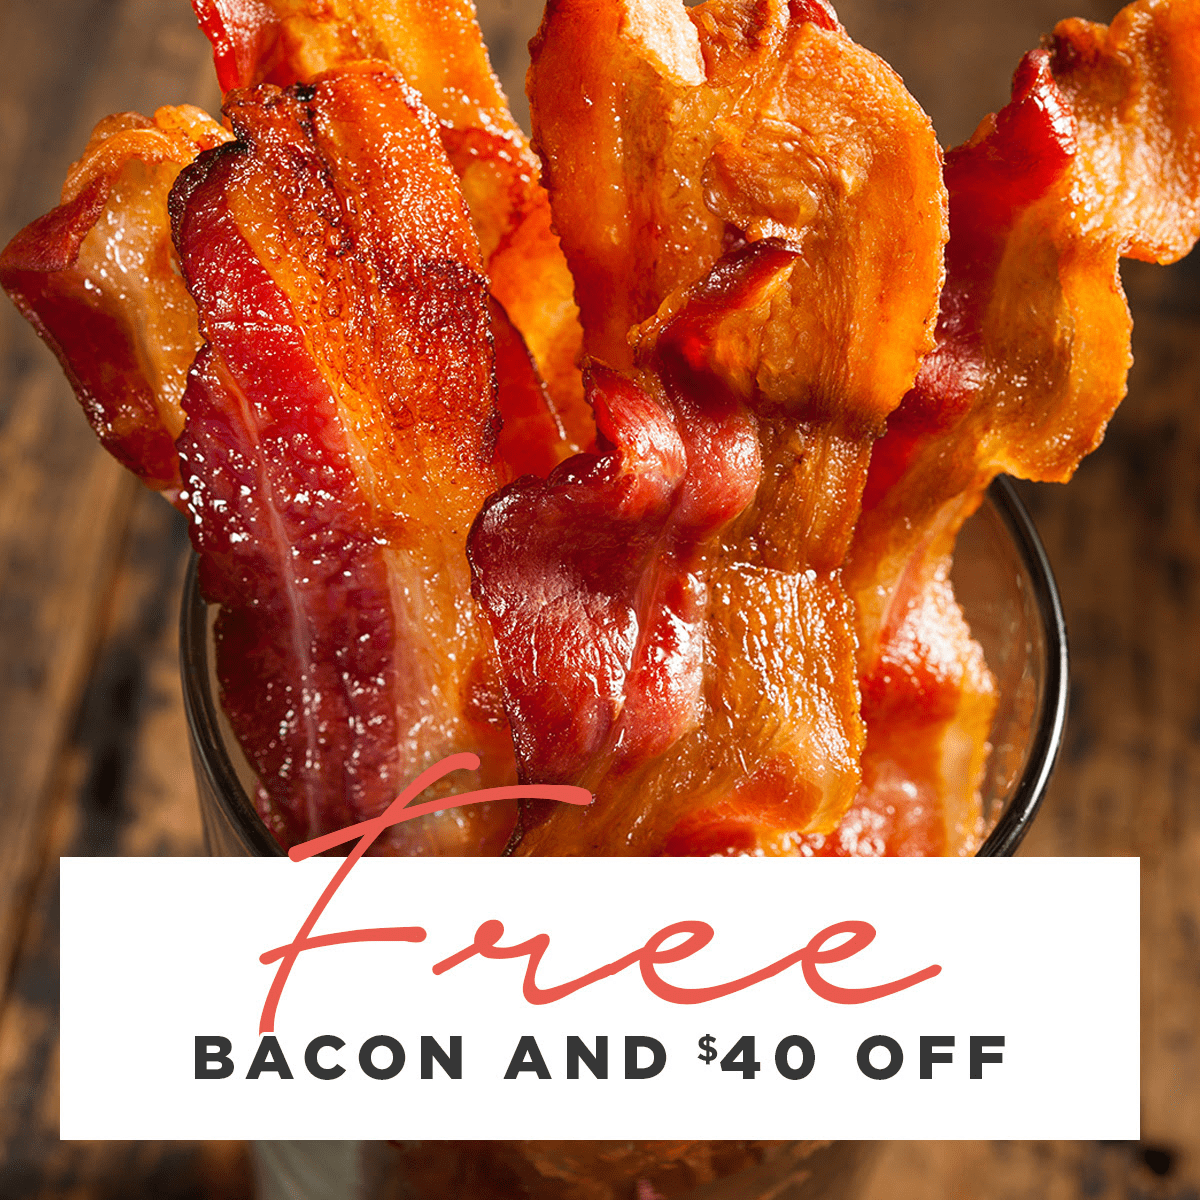 ButcherBox Holiday Deal: Get $40 Off On Your First Two Boxes + FREE Bacon!